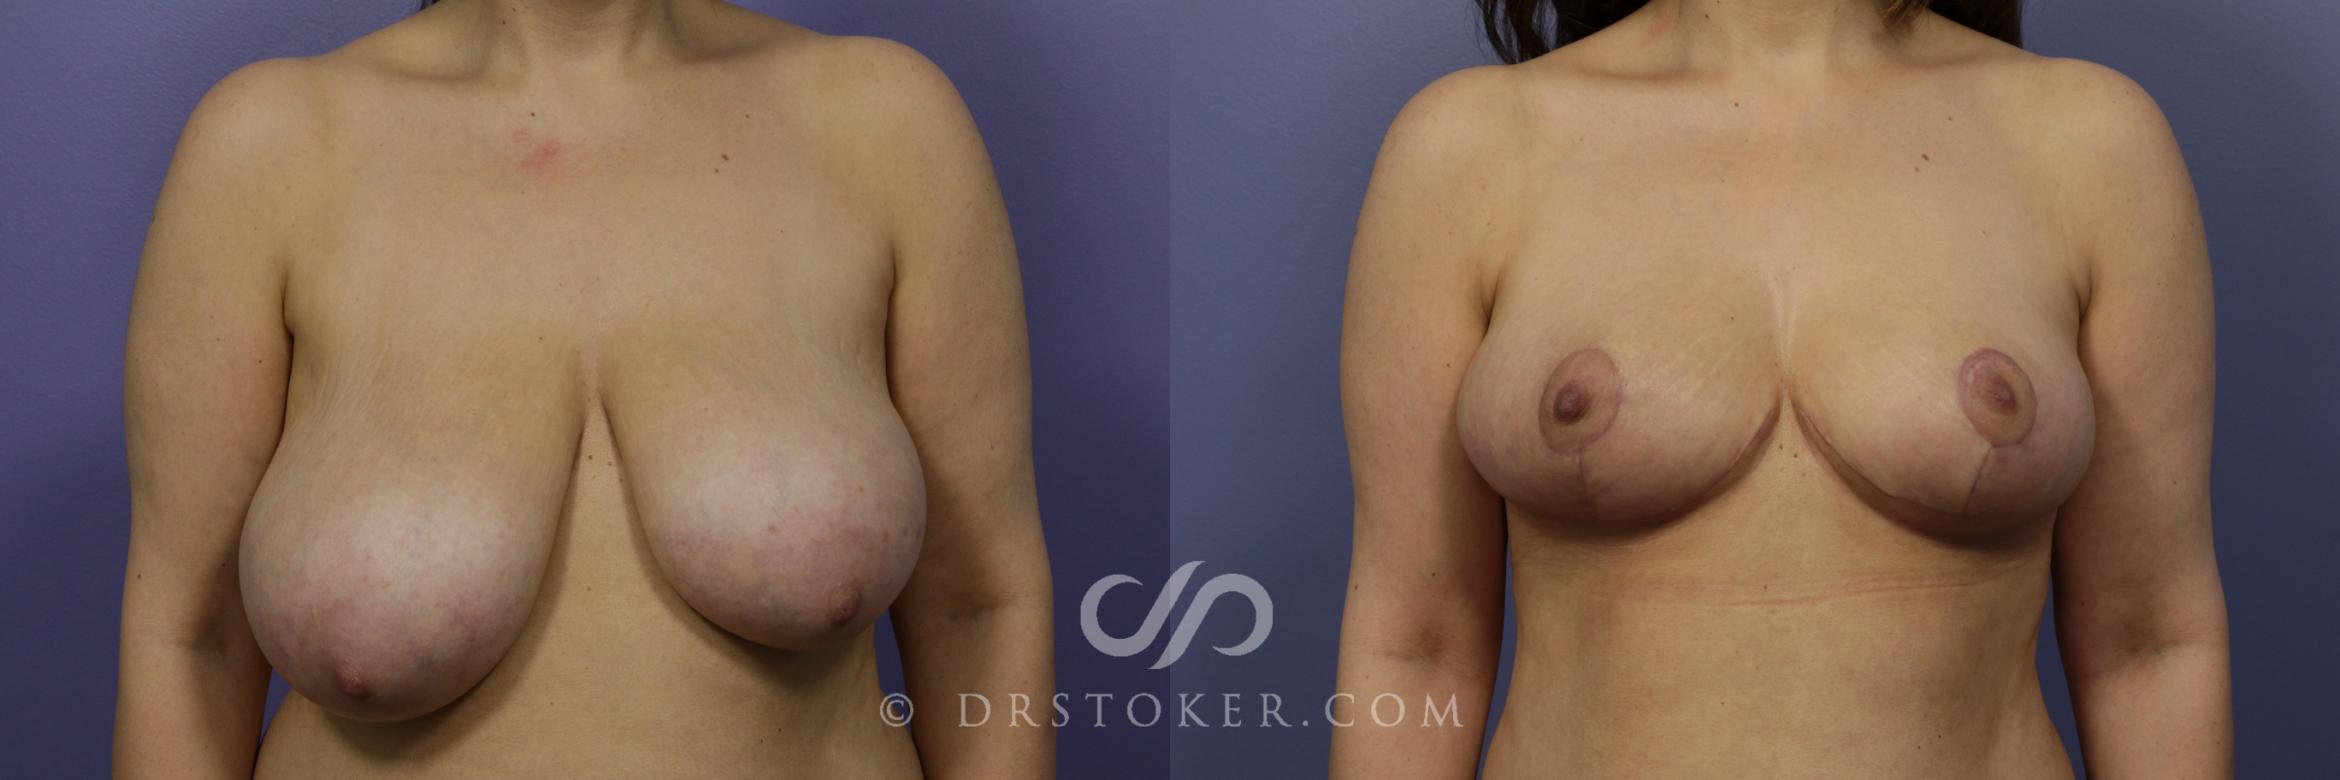 Breast Reduction (for Women) Case 883 Before & After View #1 | Los Angeles, CA | Dr. David Stoker